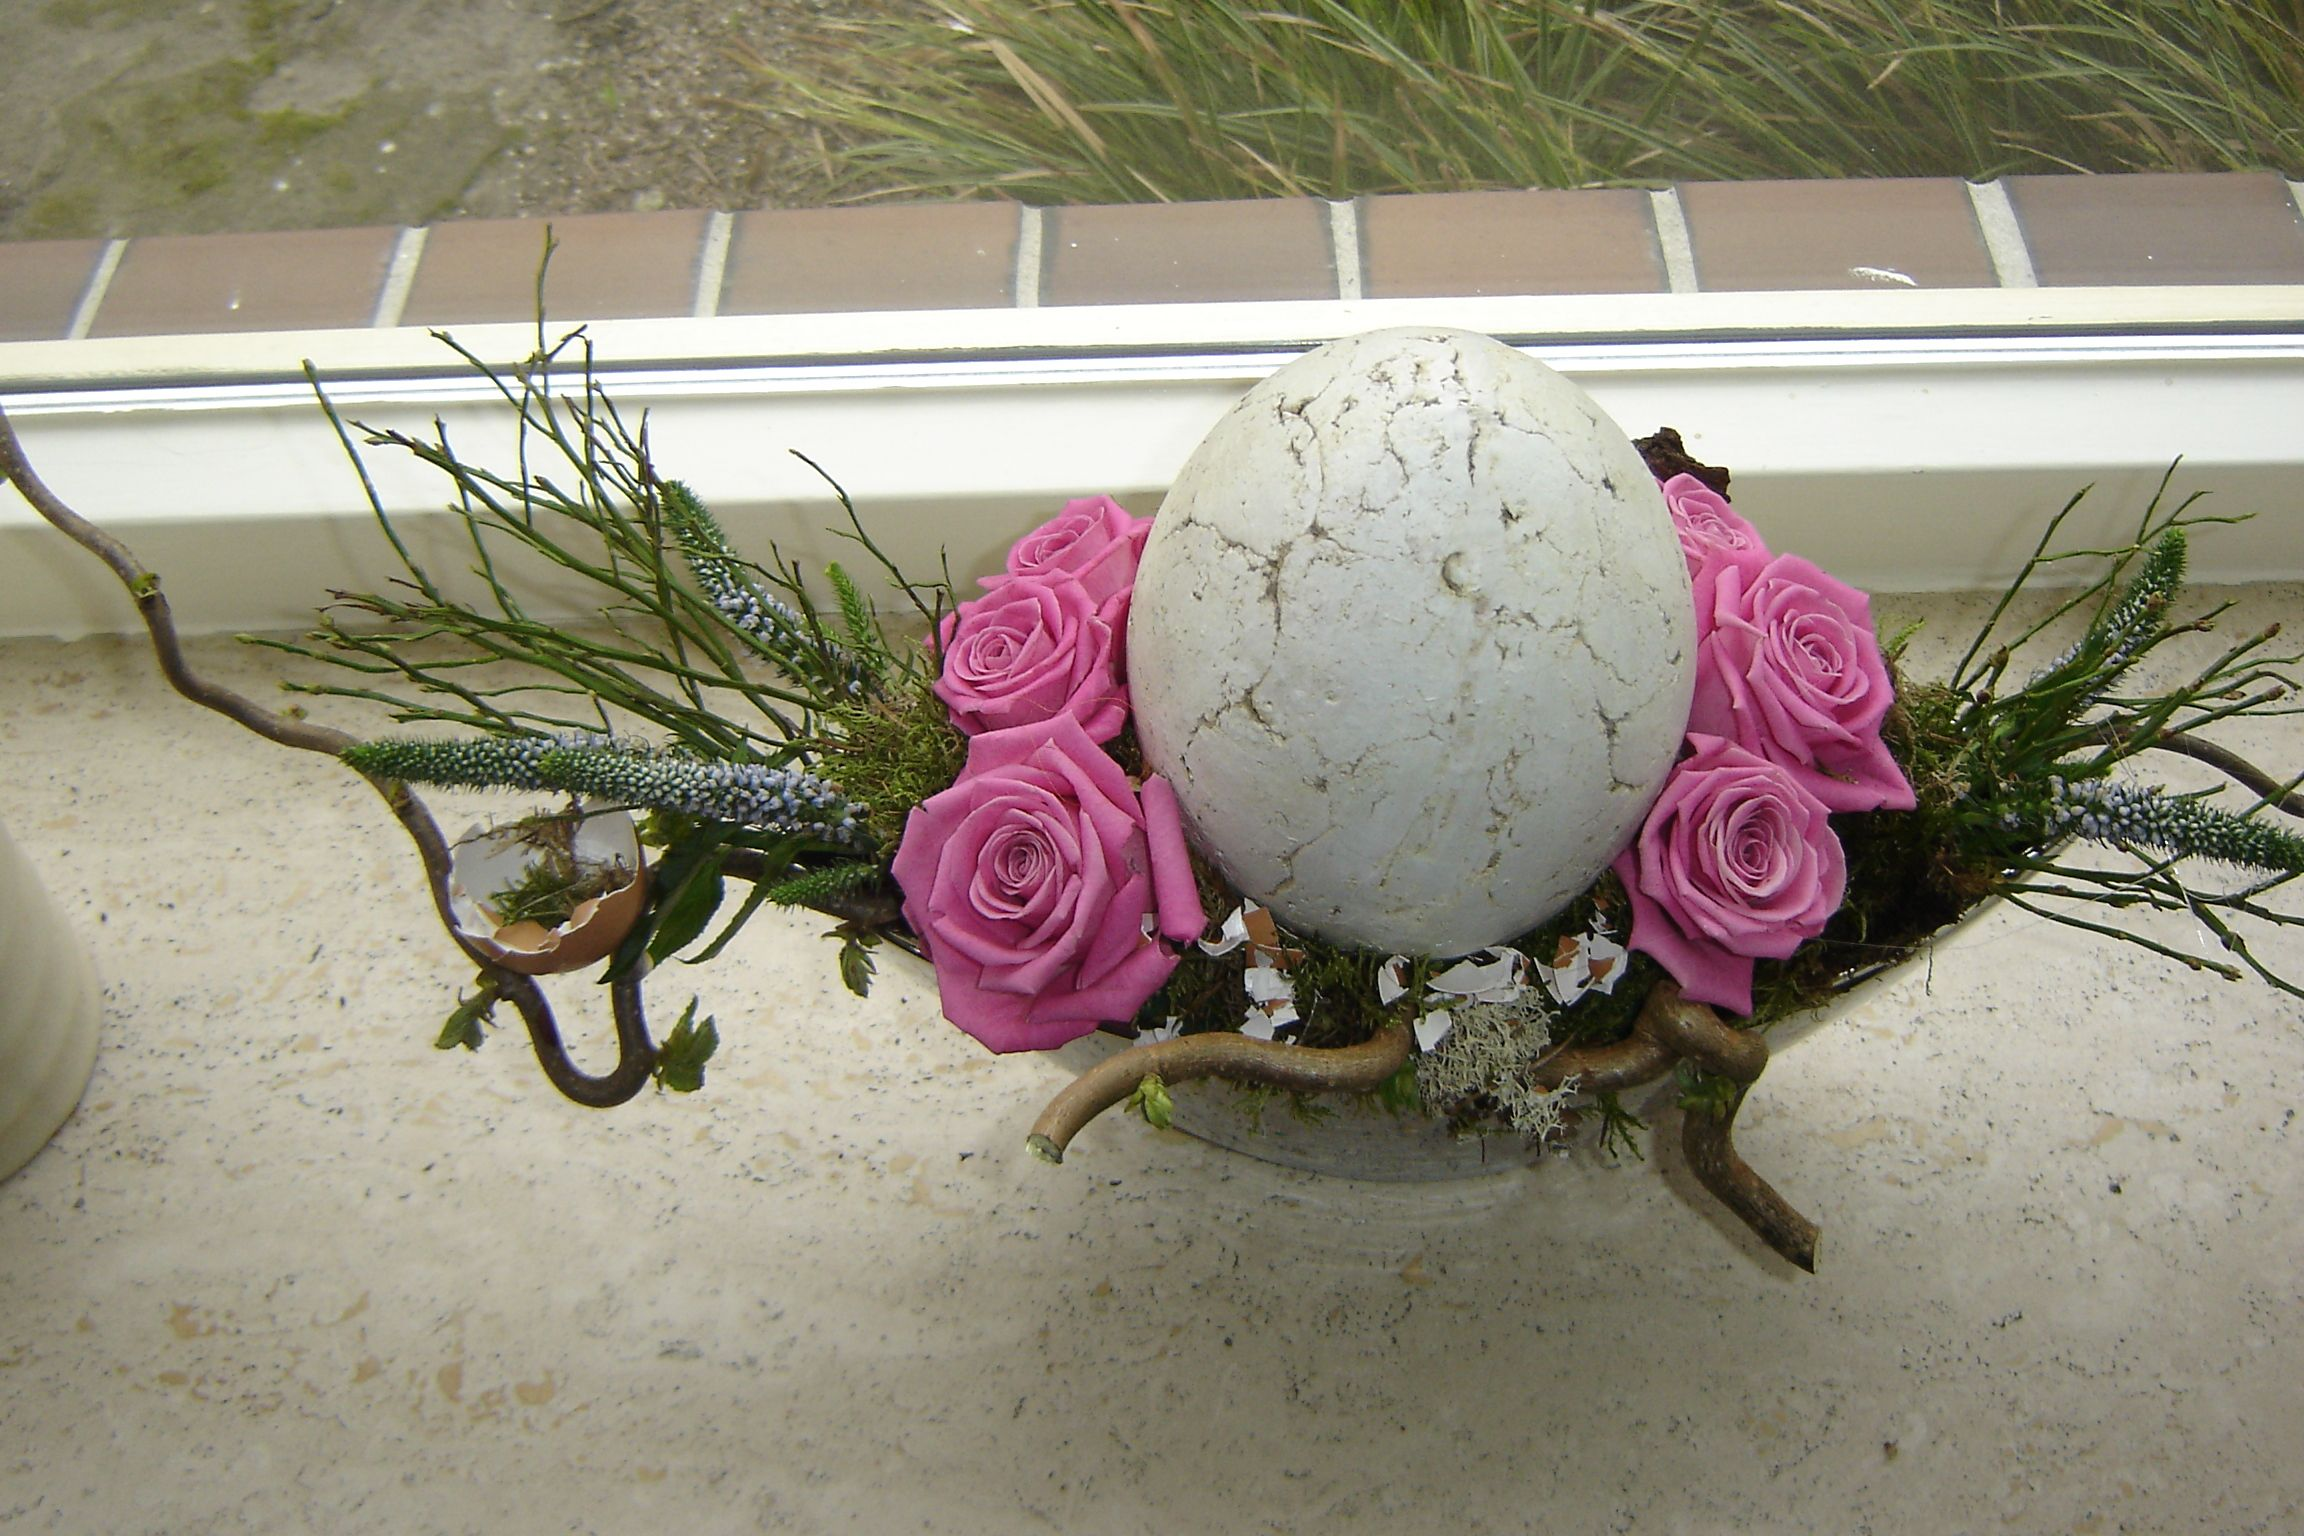 Eastern egg with roses